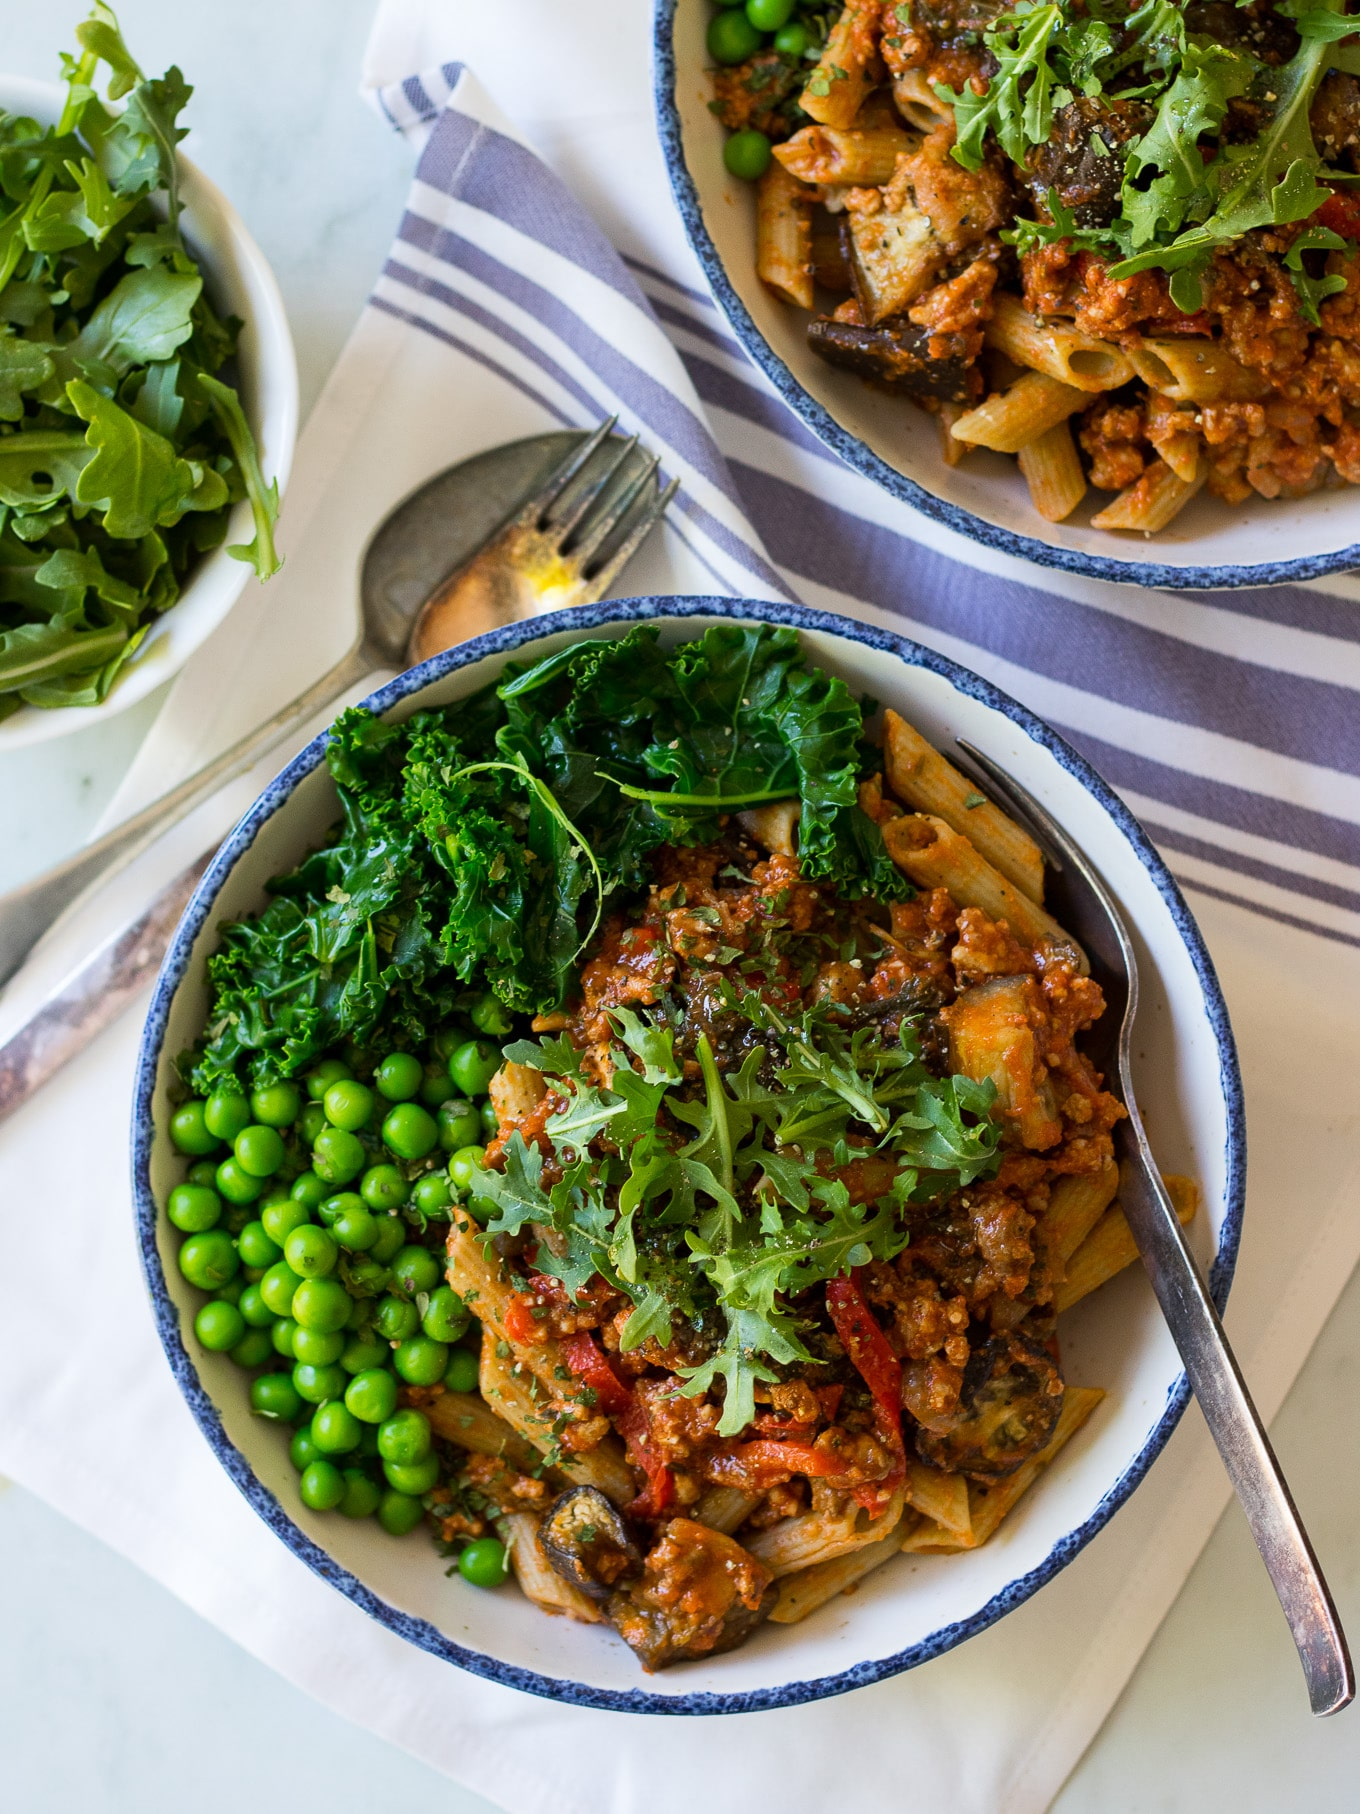 Roast Eggplant and Kale Bolognese - a healthy bolognese sauce made gluten free and dairy free. Freezes well and easy! Served over gluten free legume pasta, you could also make this paleo and use zoodles. #healthybolognese #glutenfreepasta